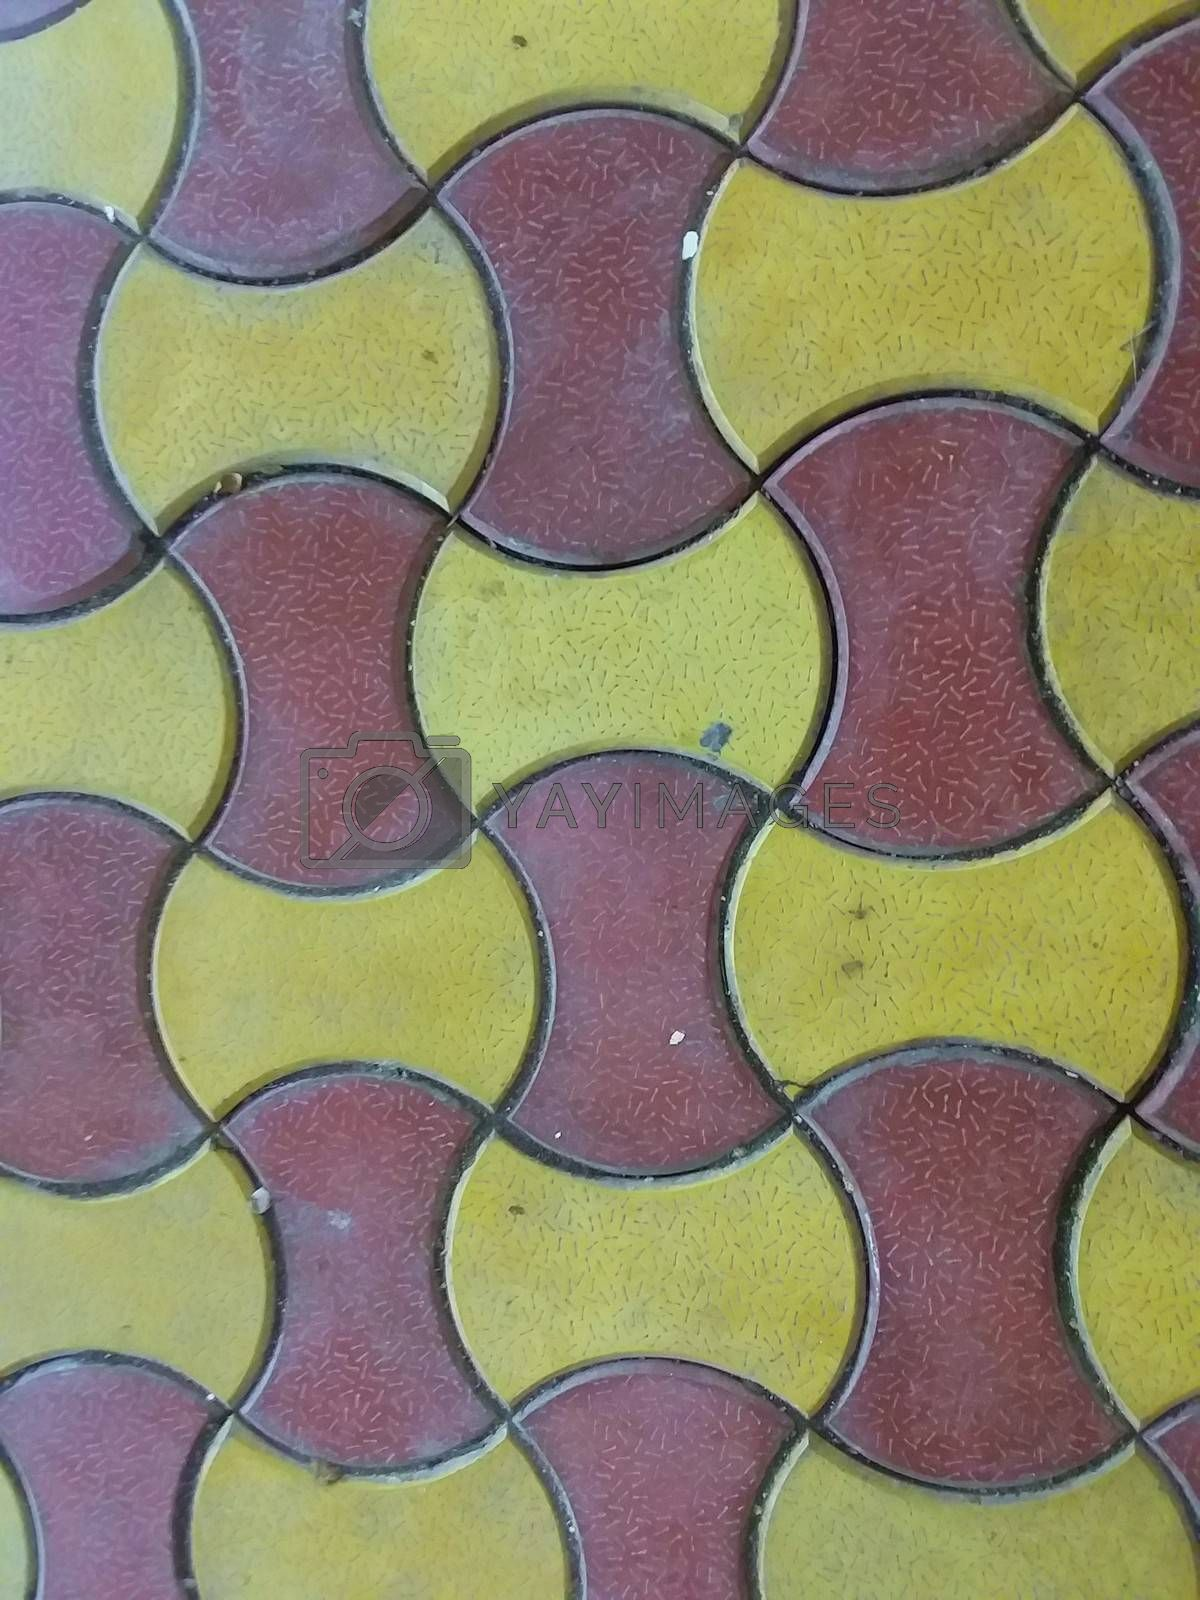 Royalty free image of red and yellow ceramic design on tiles by gswagh71